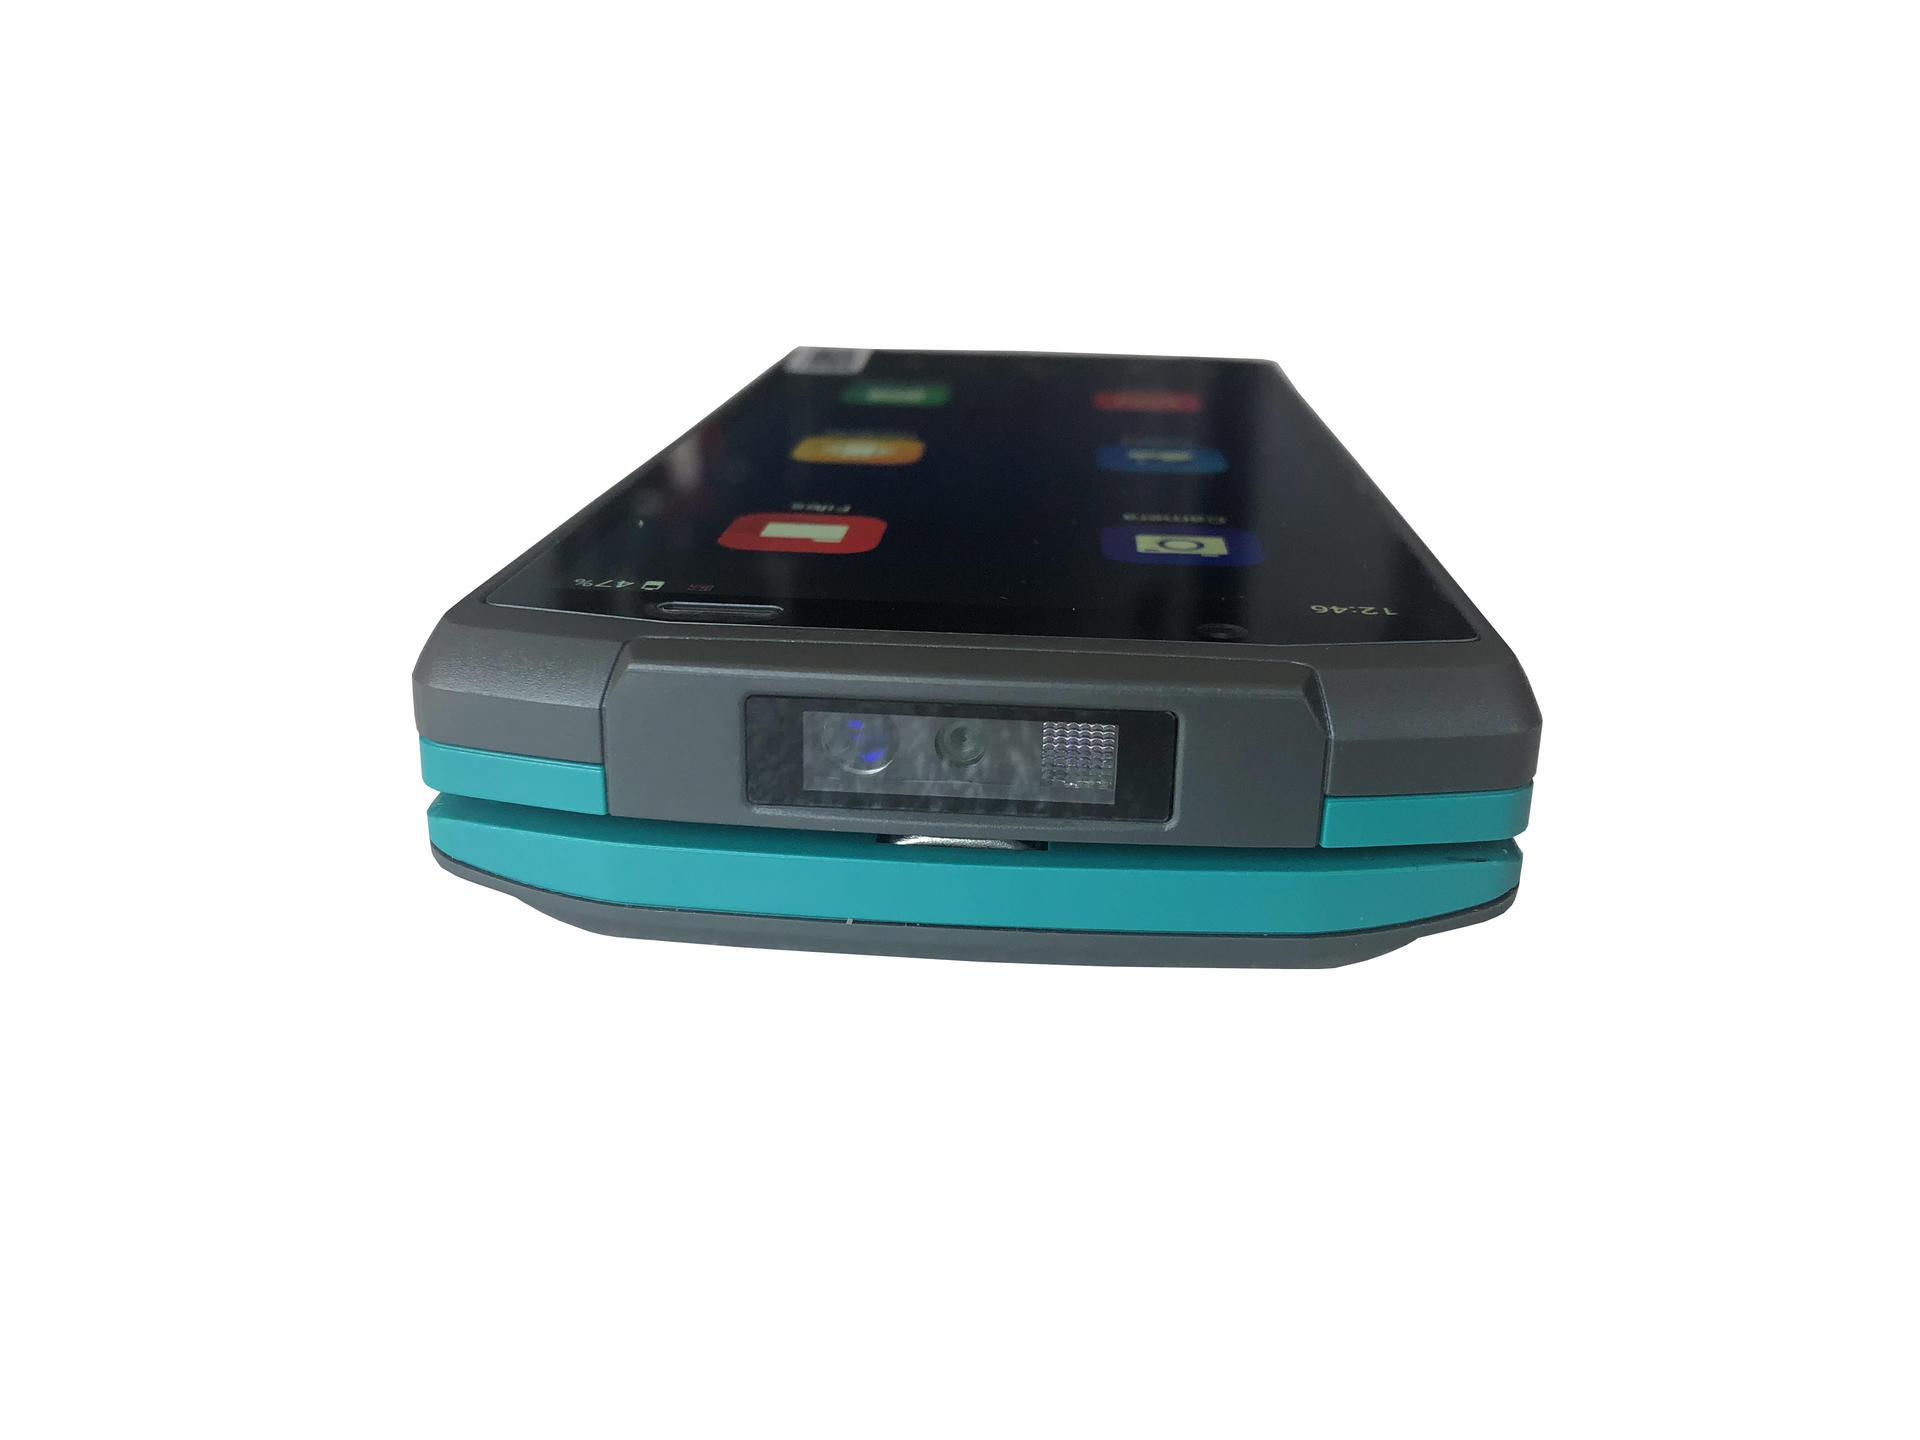 Android Smart POS Machine for Contactless and QR Code